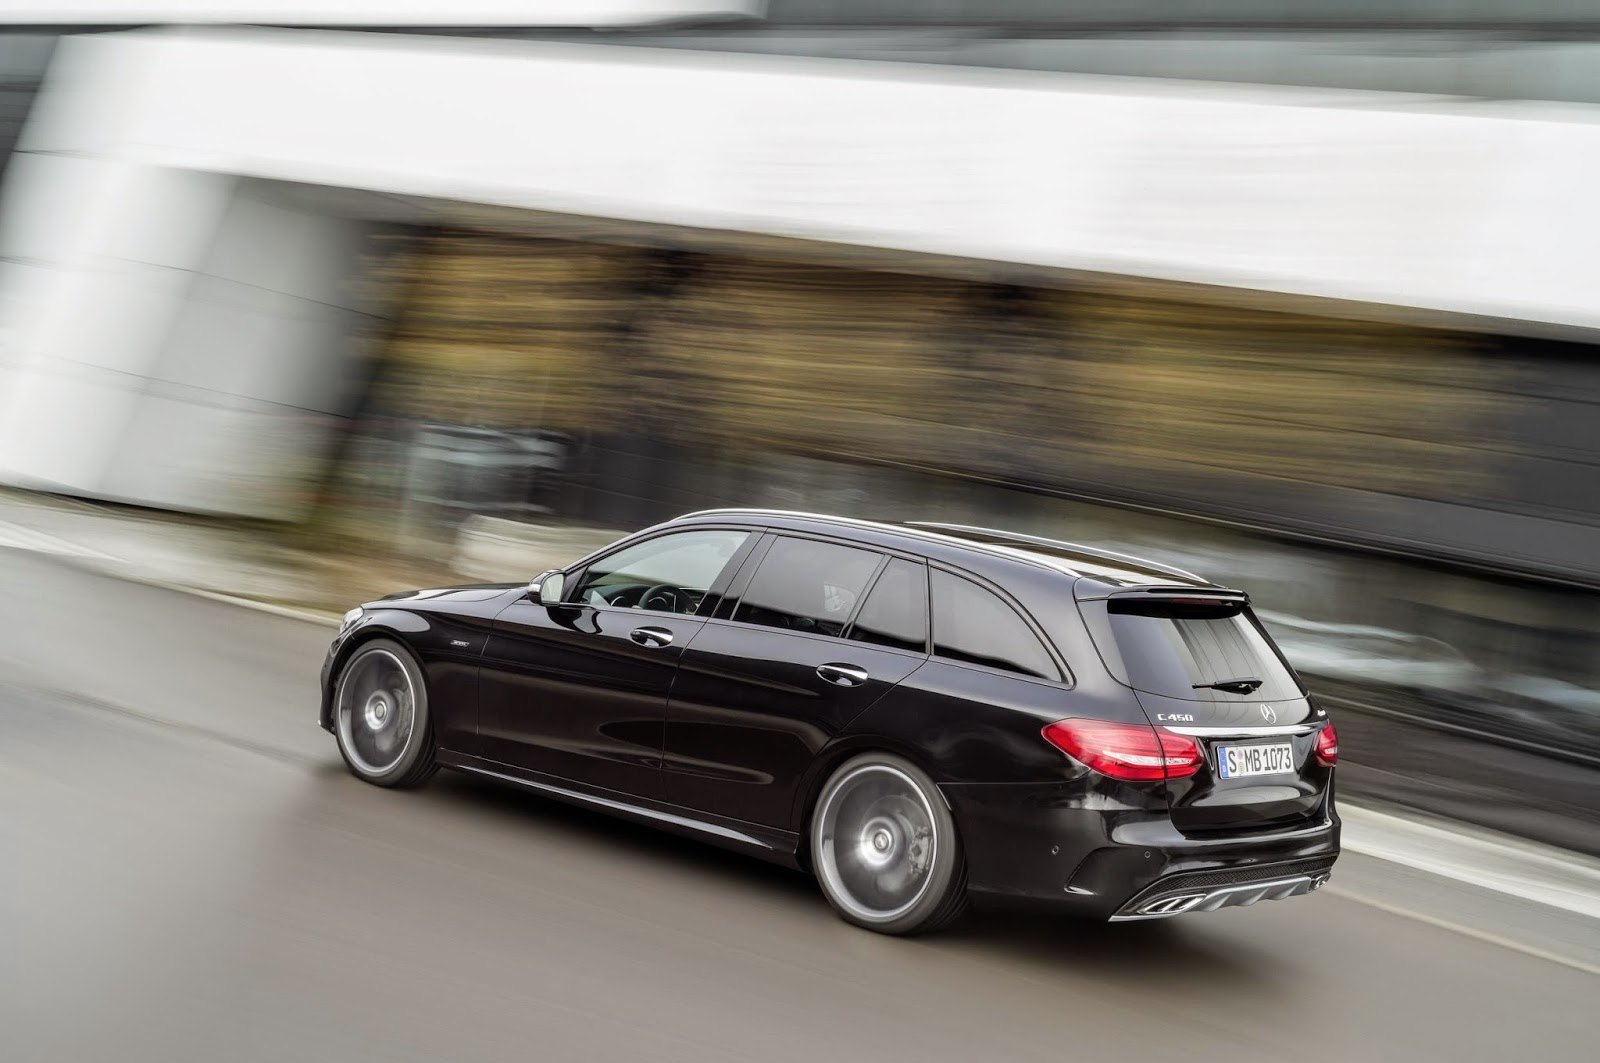 Mercedes Benz C450 AMG moving rear angle